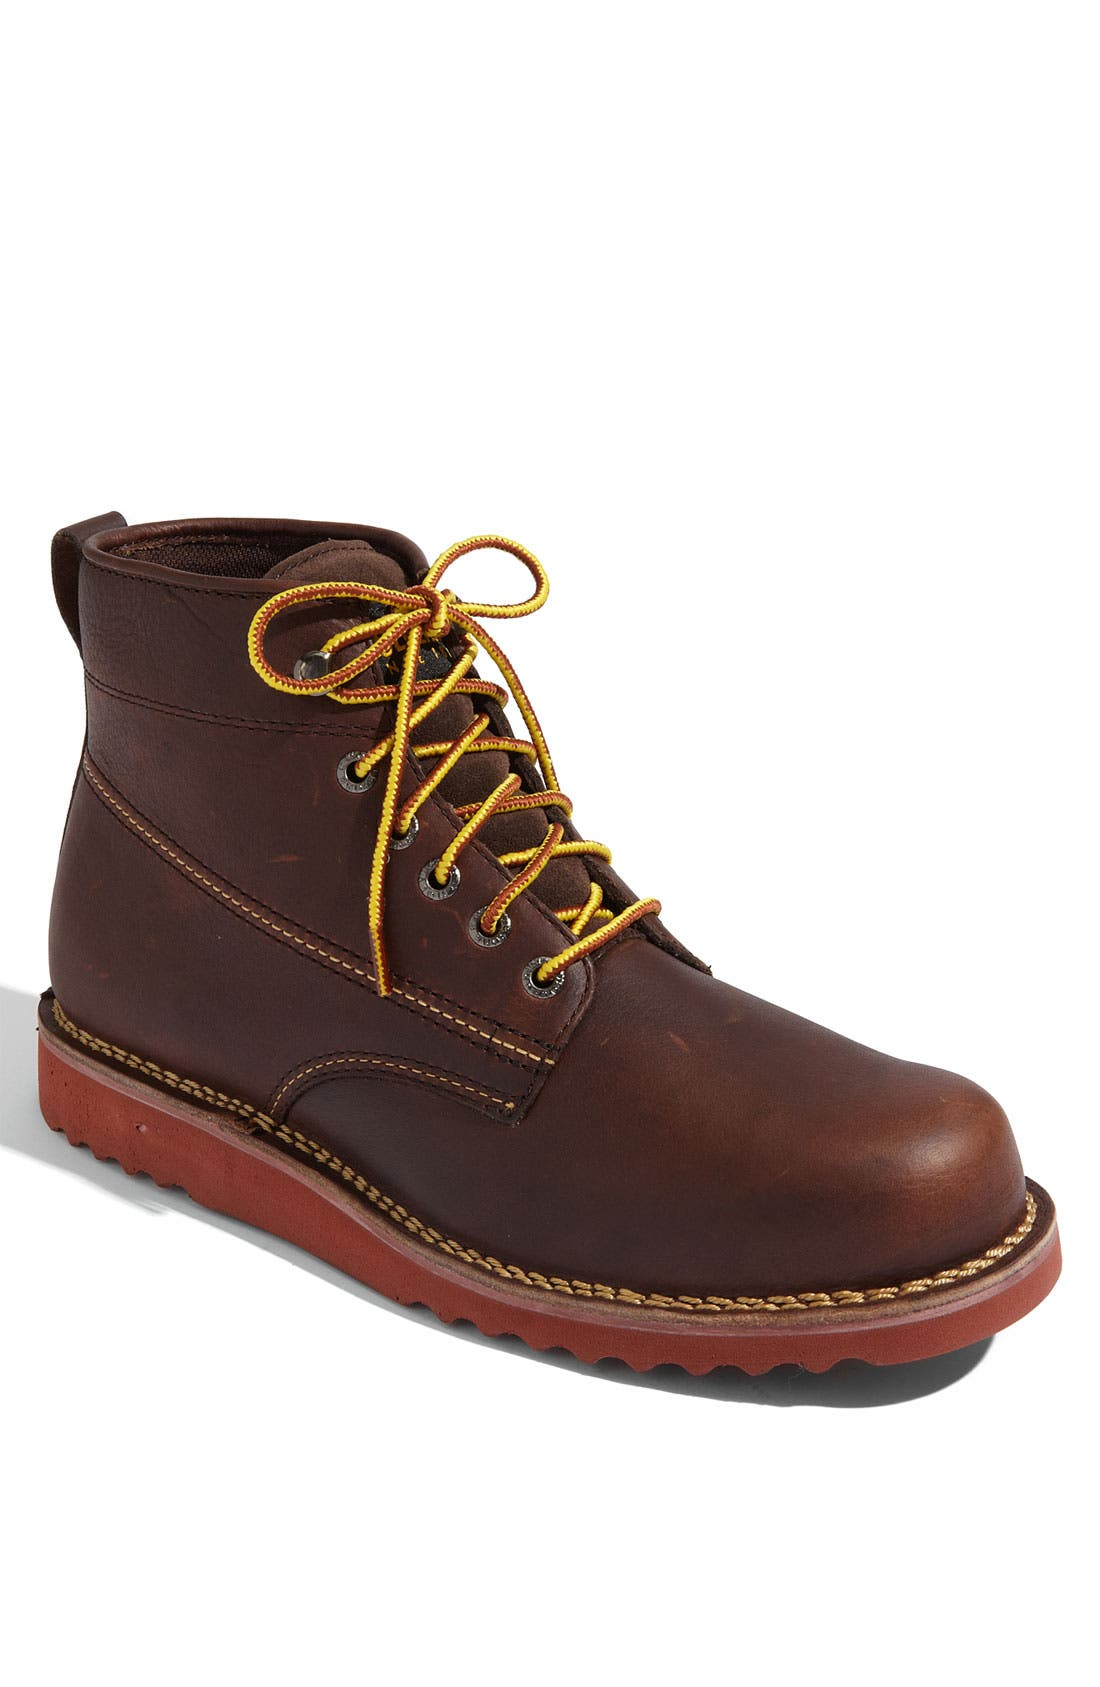 Alternate Image 1 Selected - Wolverine 'Rory' Boot